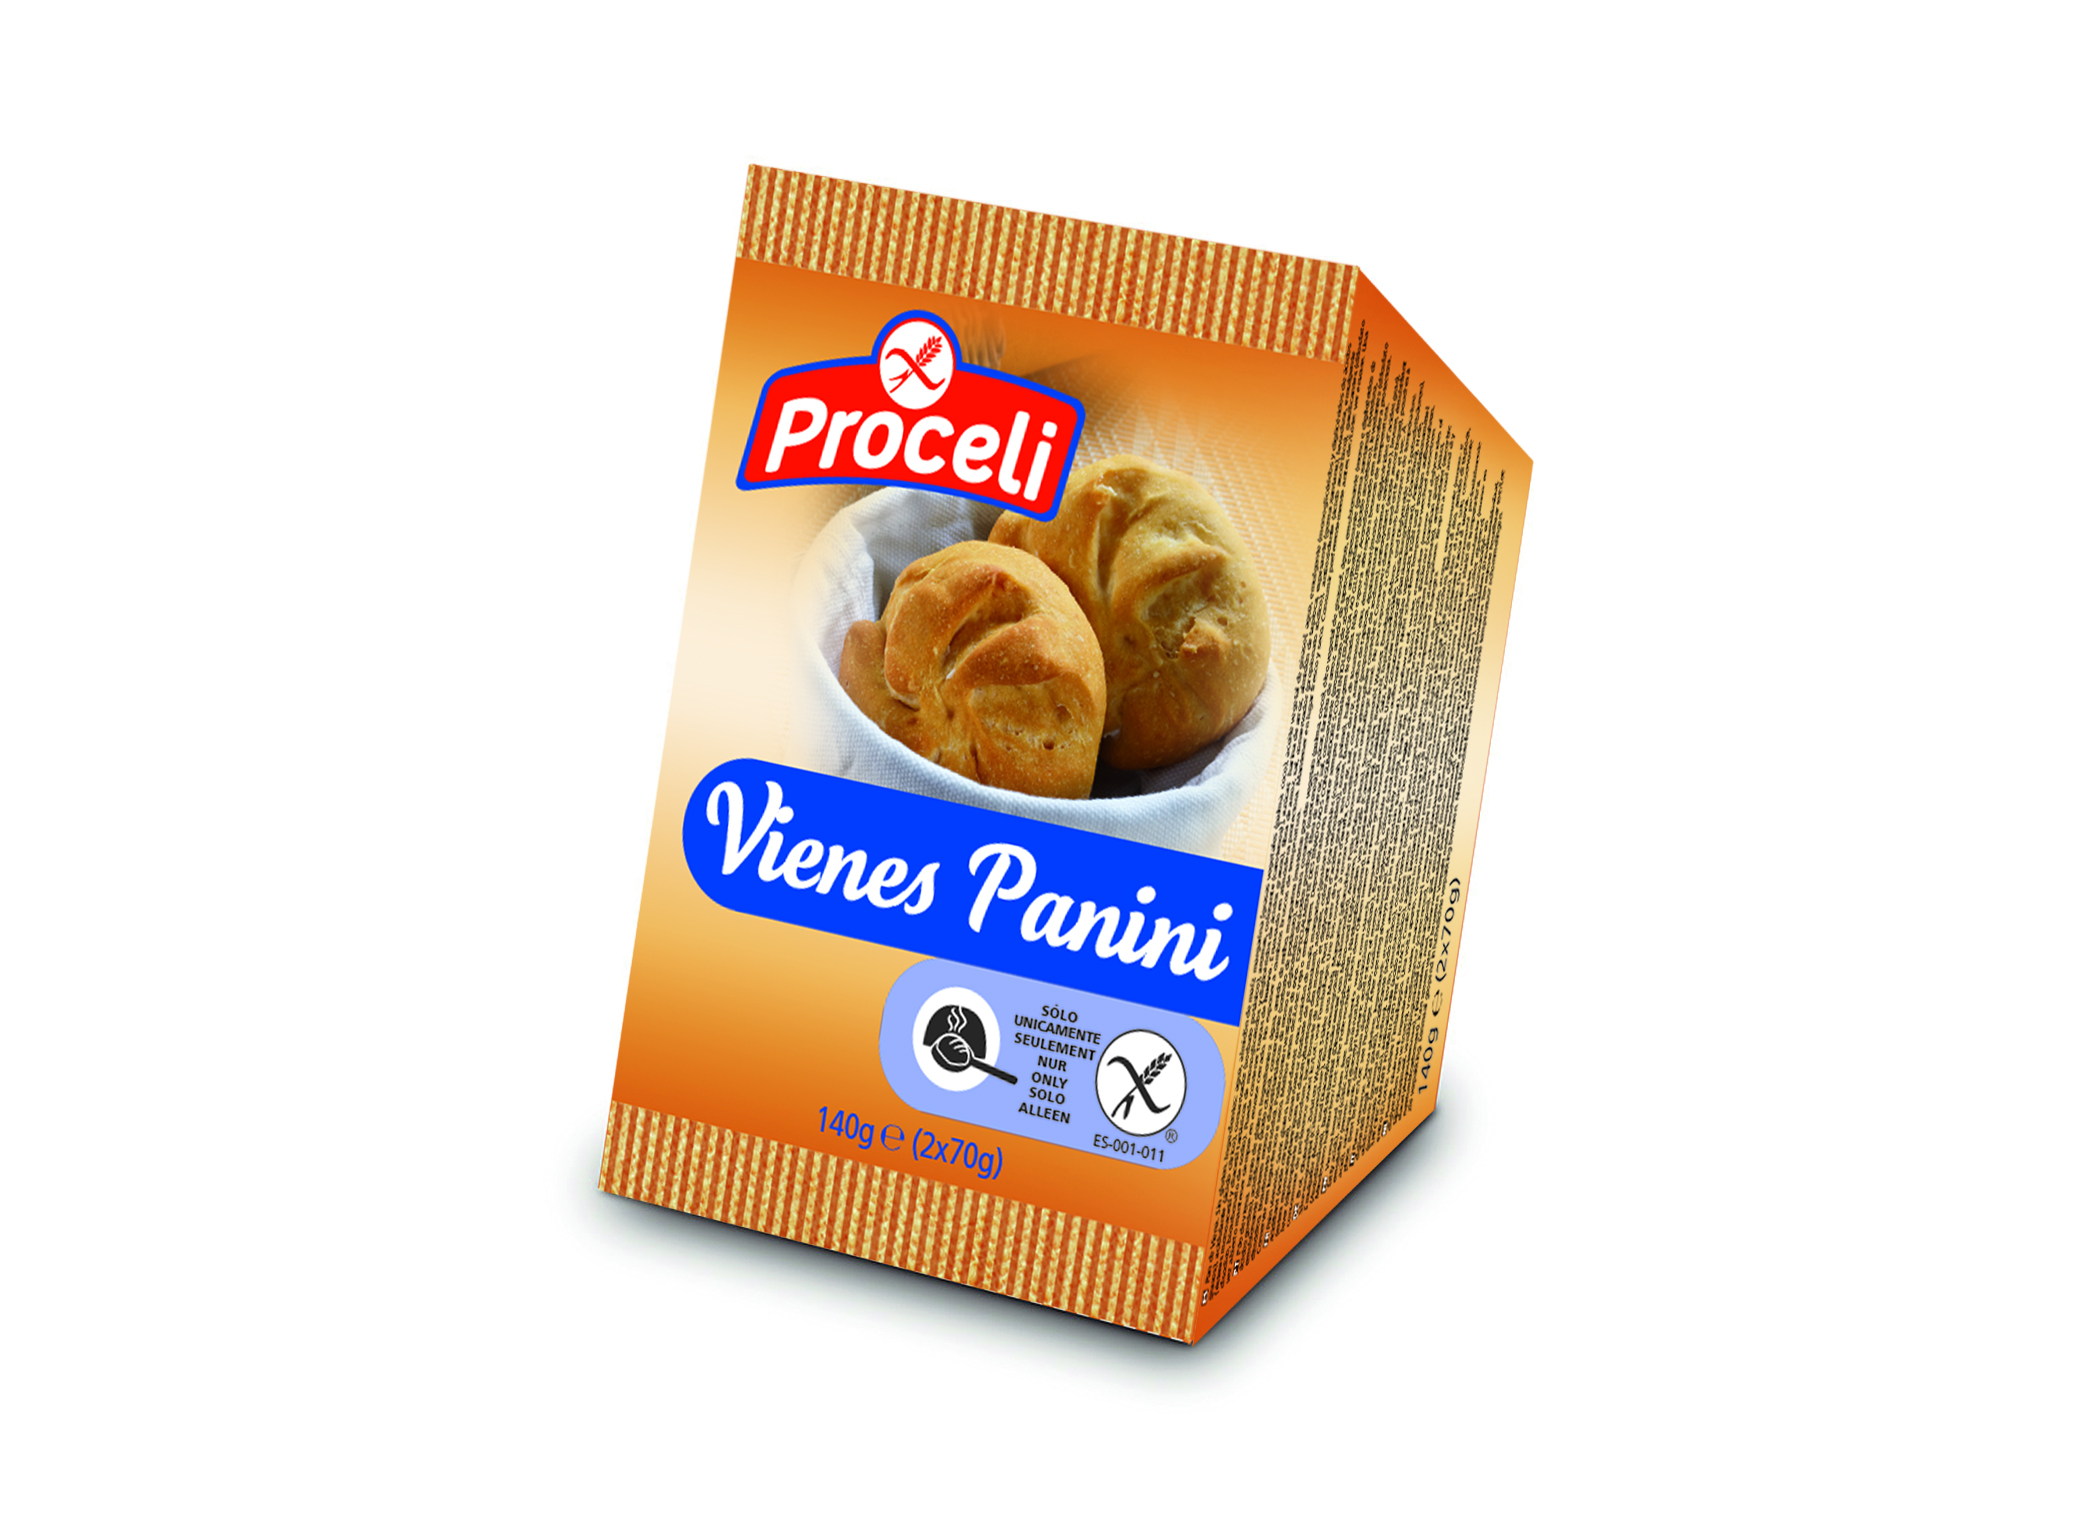 Vienes-Panini gluten-free from Proceli is an ideal bread for sandwiches or to accompany a meal. It needs to be finished off in the oven.